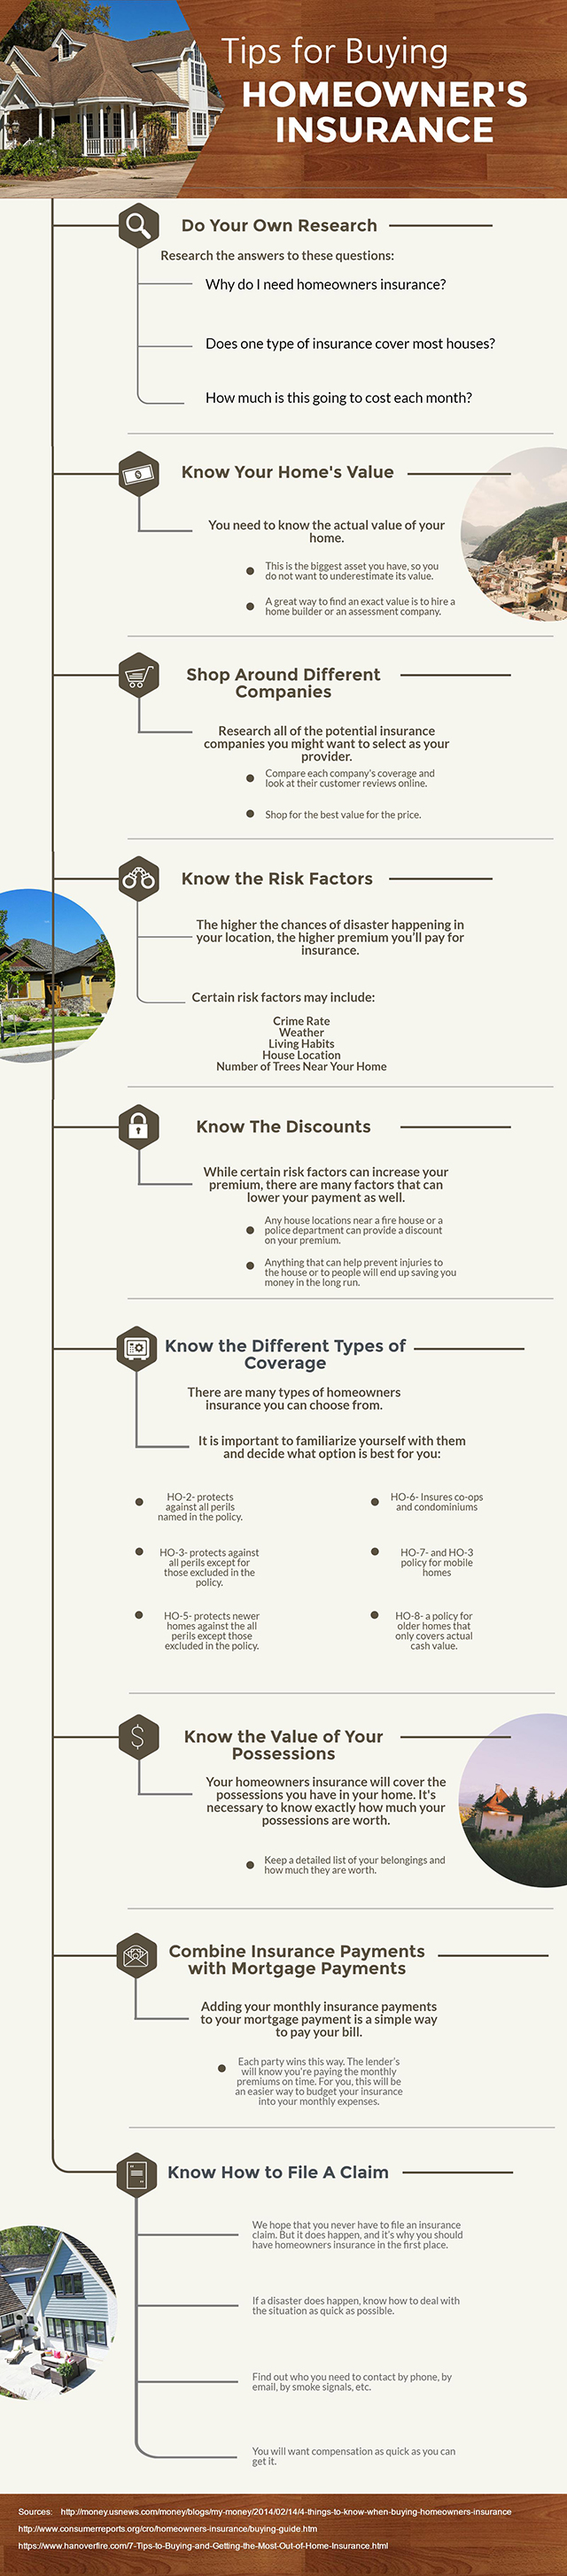 10 Need-To-Know Tips For Buying Homeowners Insurance